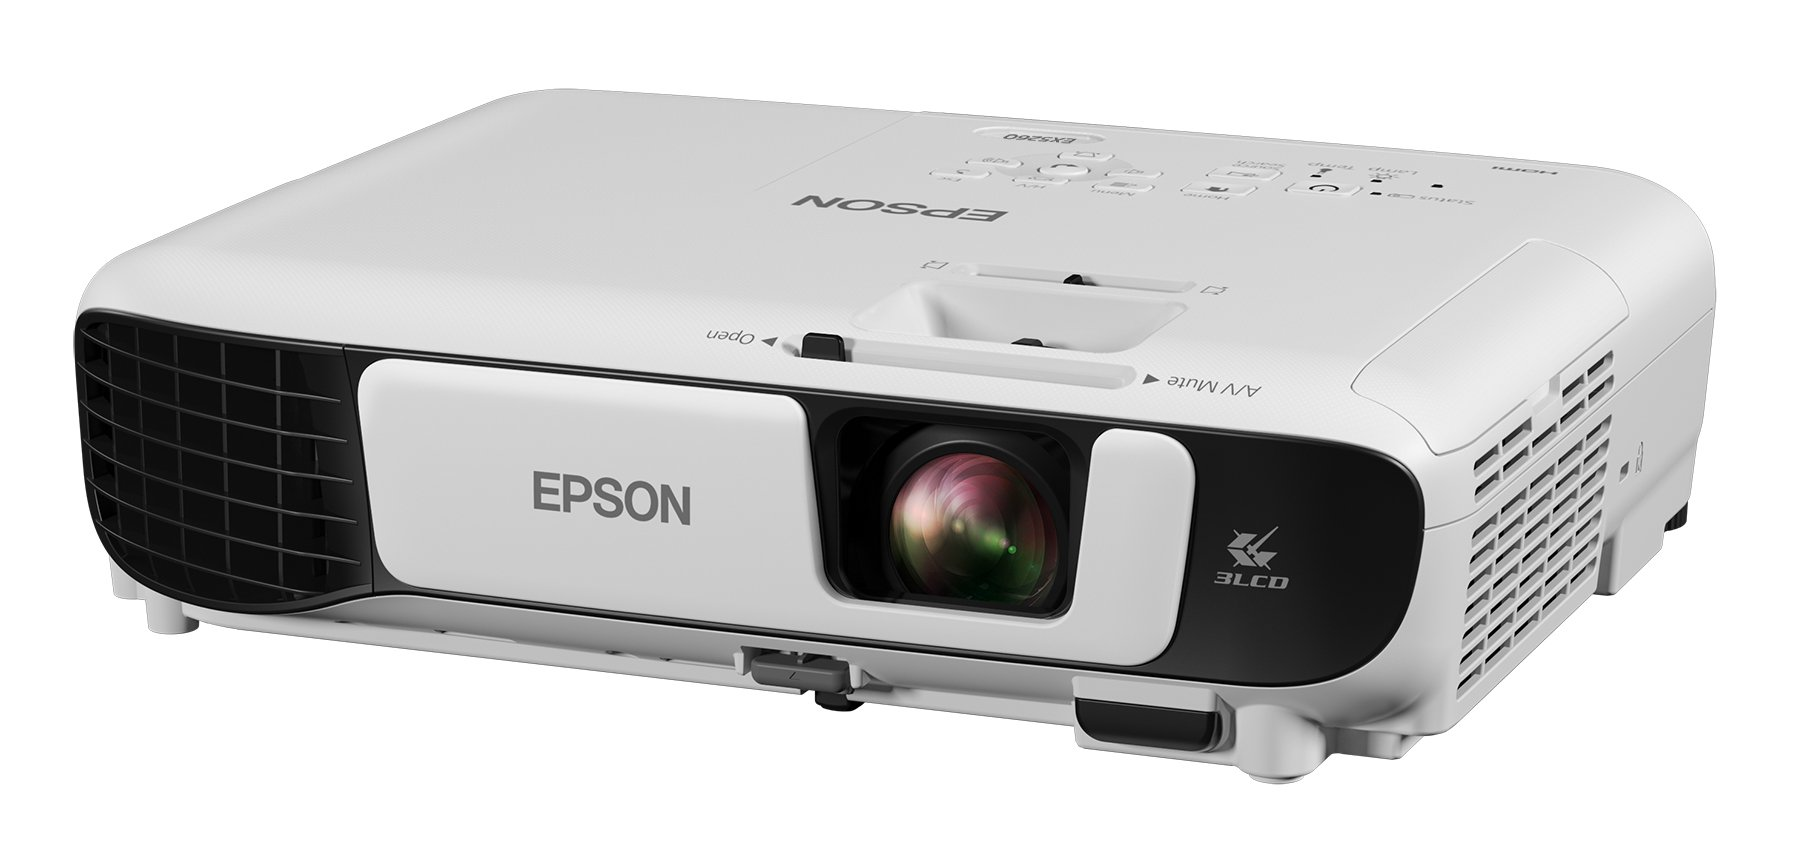 Epson EX5260 XGA 3,600 lumens color brightness (color light output) 3,600 lumens white brightness (white light output) wireless HDMI 3LCD projector by Epson